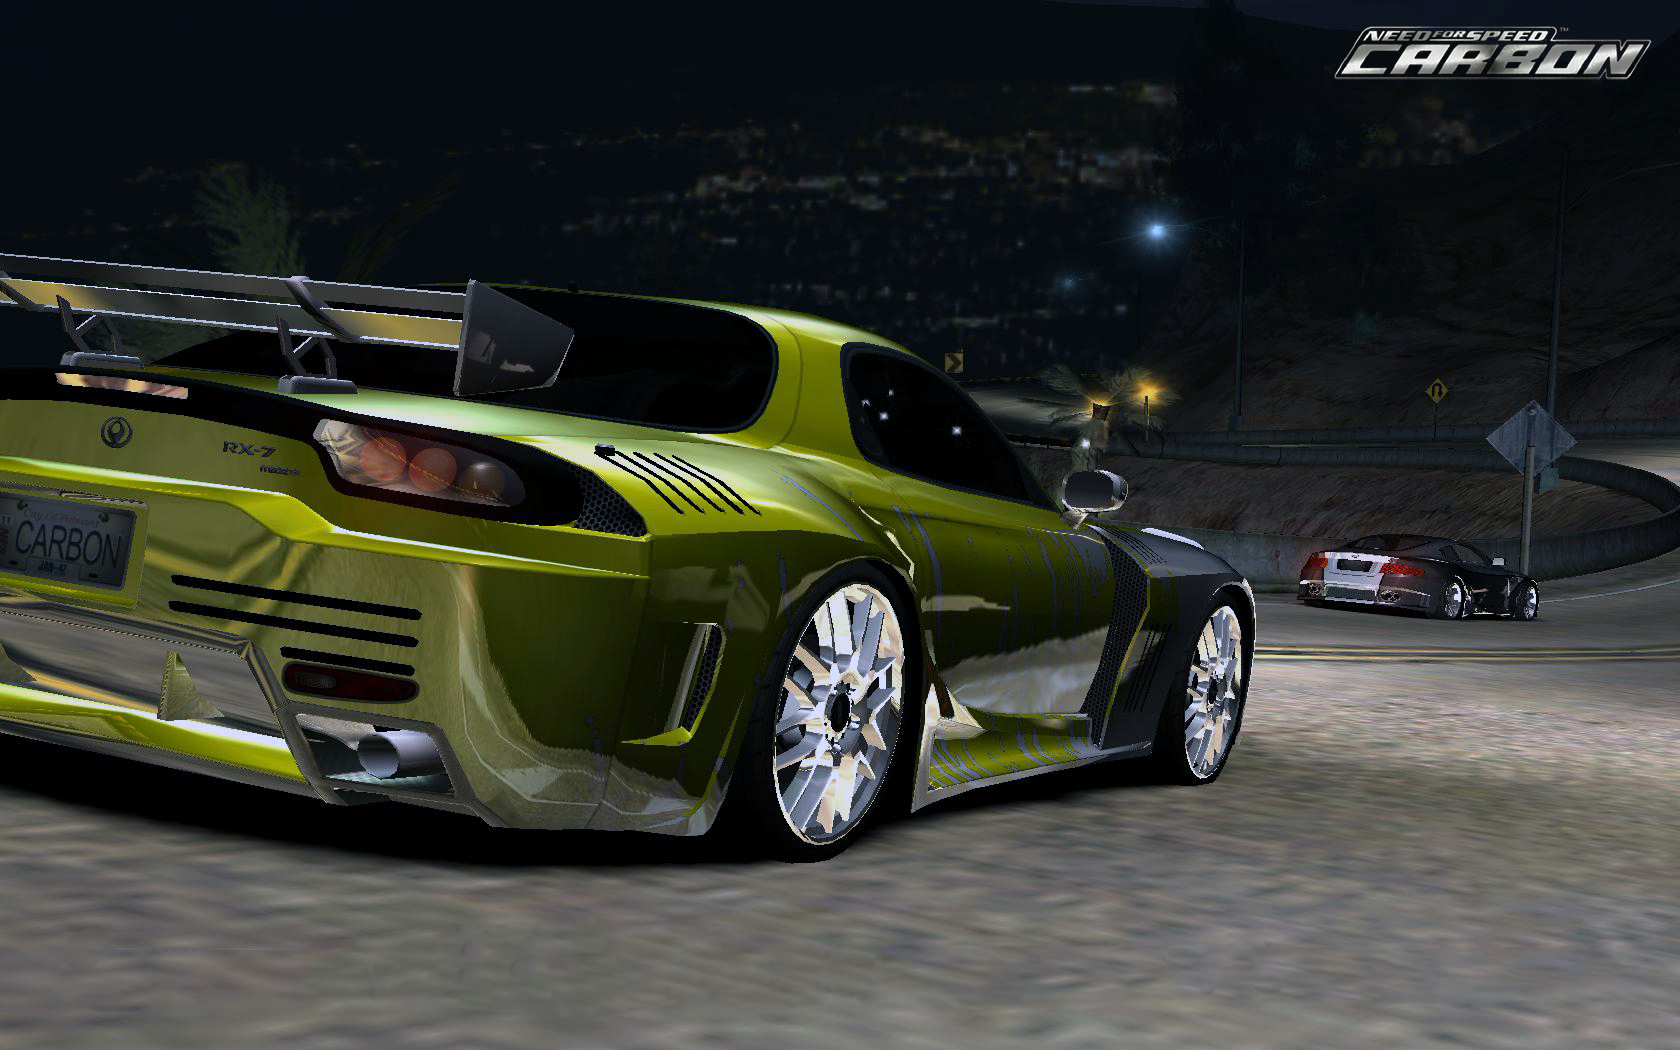 Mazda rx-7 need for HD Wallpaper